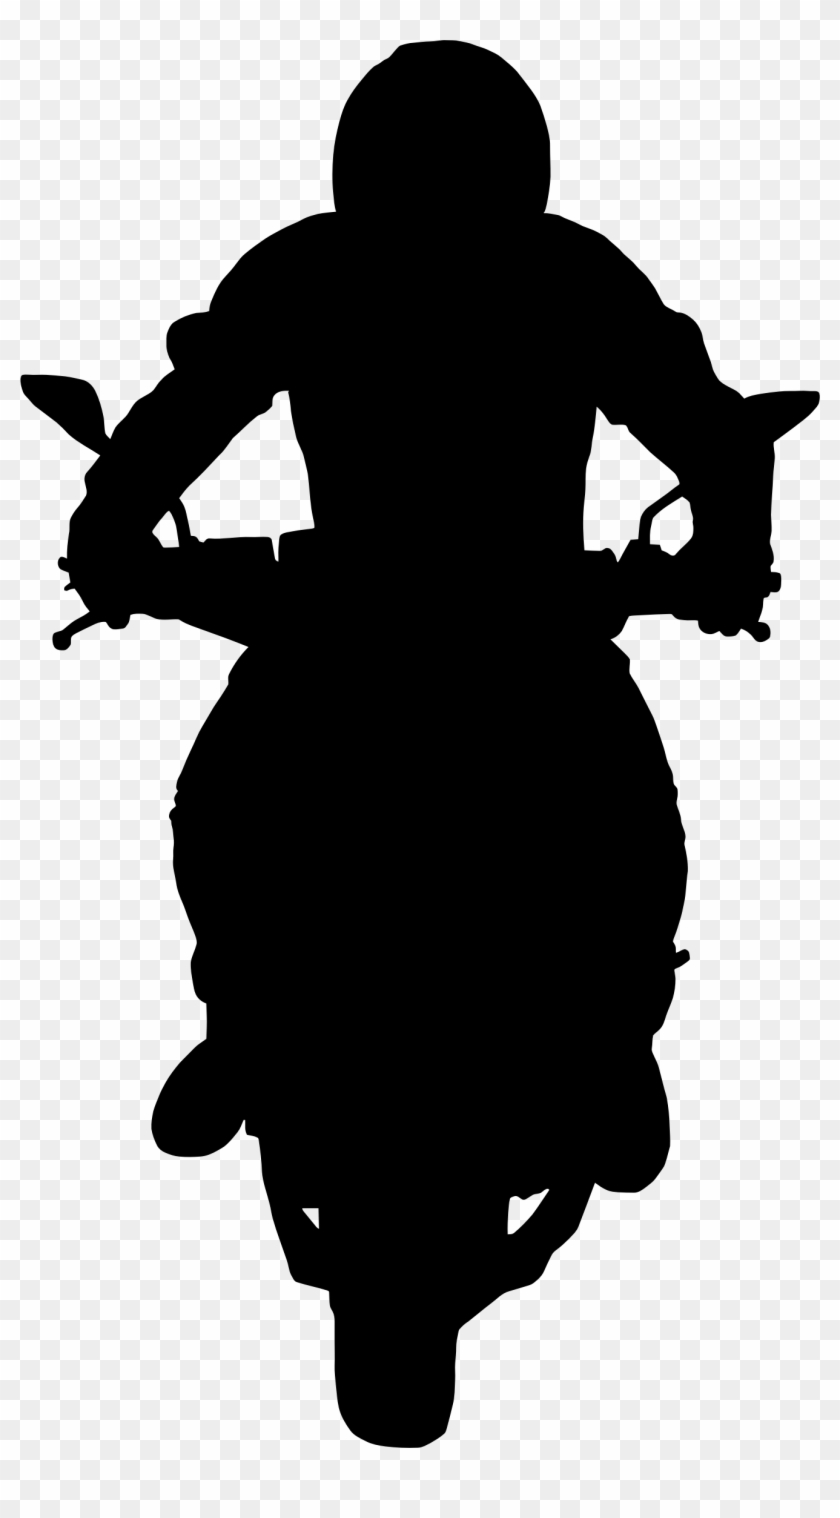 Silhouette Of A Motorcycle Clipart Motorcycle Rider Silhouette Png